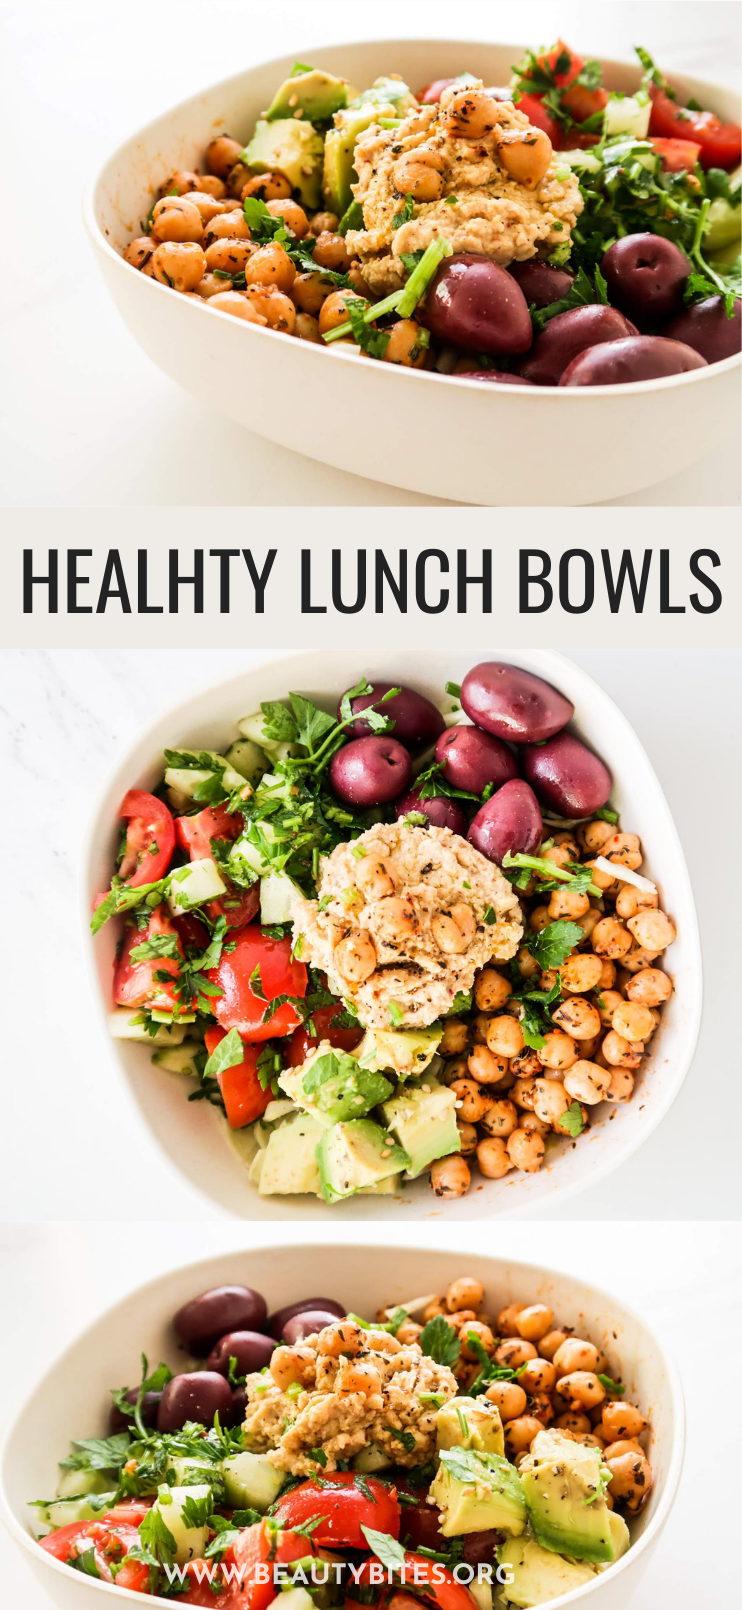 20-Minute Mediterranean Lunch Bowl! This healthy lunch idea is super tasty, very easy to make, vegan and gluten-free. If you're eating healthy and making your meals ahead for the week, this clean eating vegan lunch bowl also comes with an easy meal prep option that will help you eat clean for the entire week! #lunch #Mediterranean #vegan #glutenfree